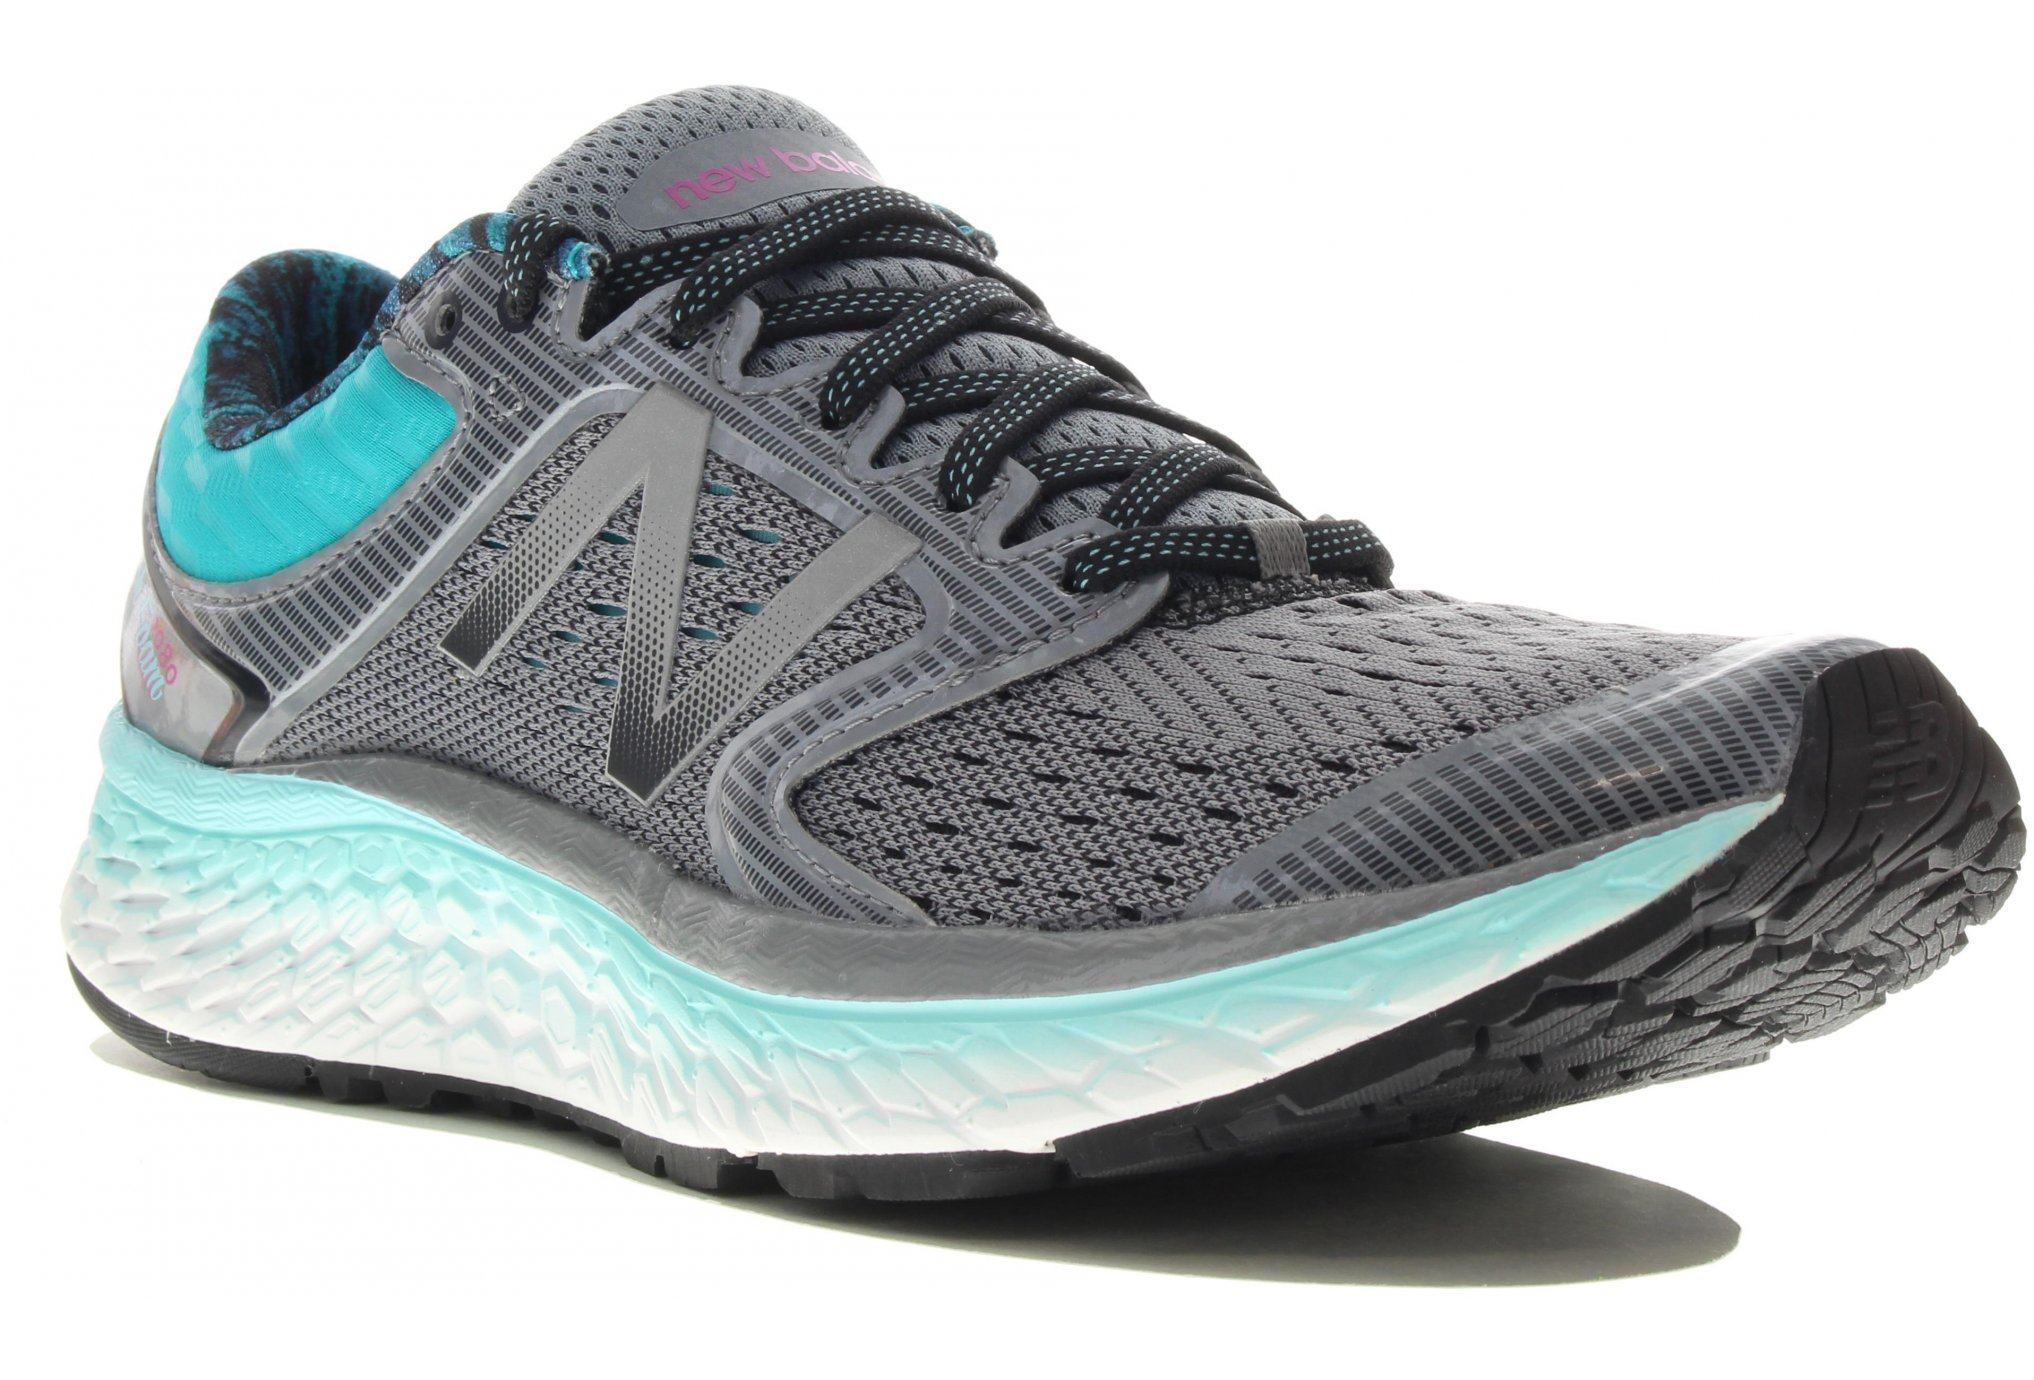 New Balance Fresh Foam W 1080 V7 - B Chaussures running femme